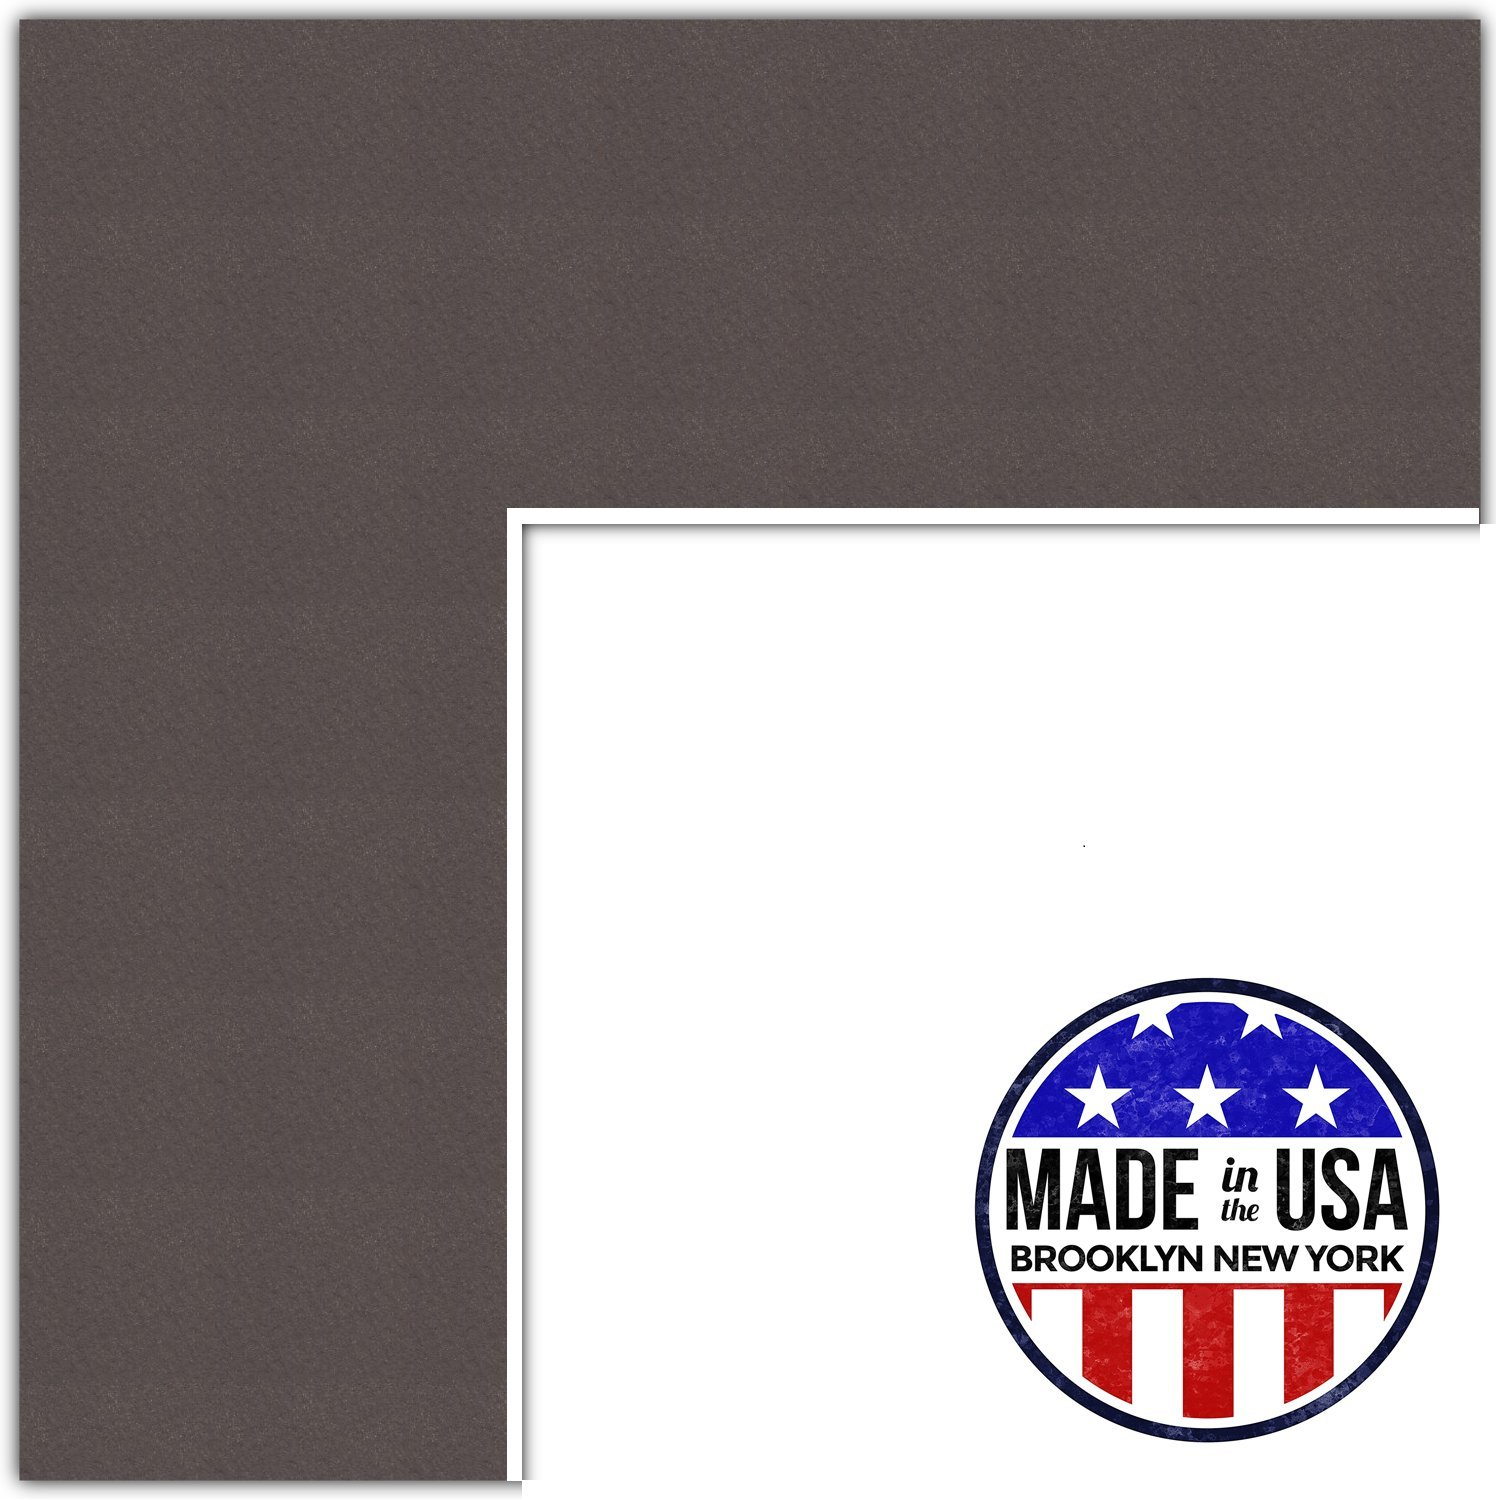 22x28 Weatherwood/Chestnut Custom Mat for Picture Frame with 18x24 opening size (Mat Only, Frame NOT Included)